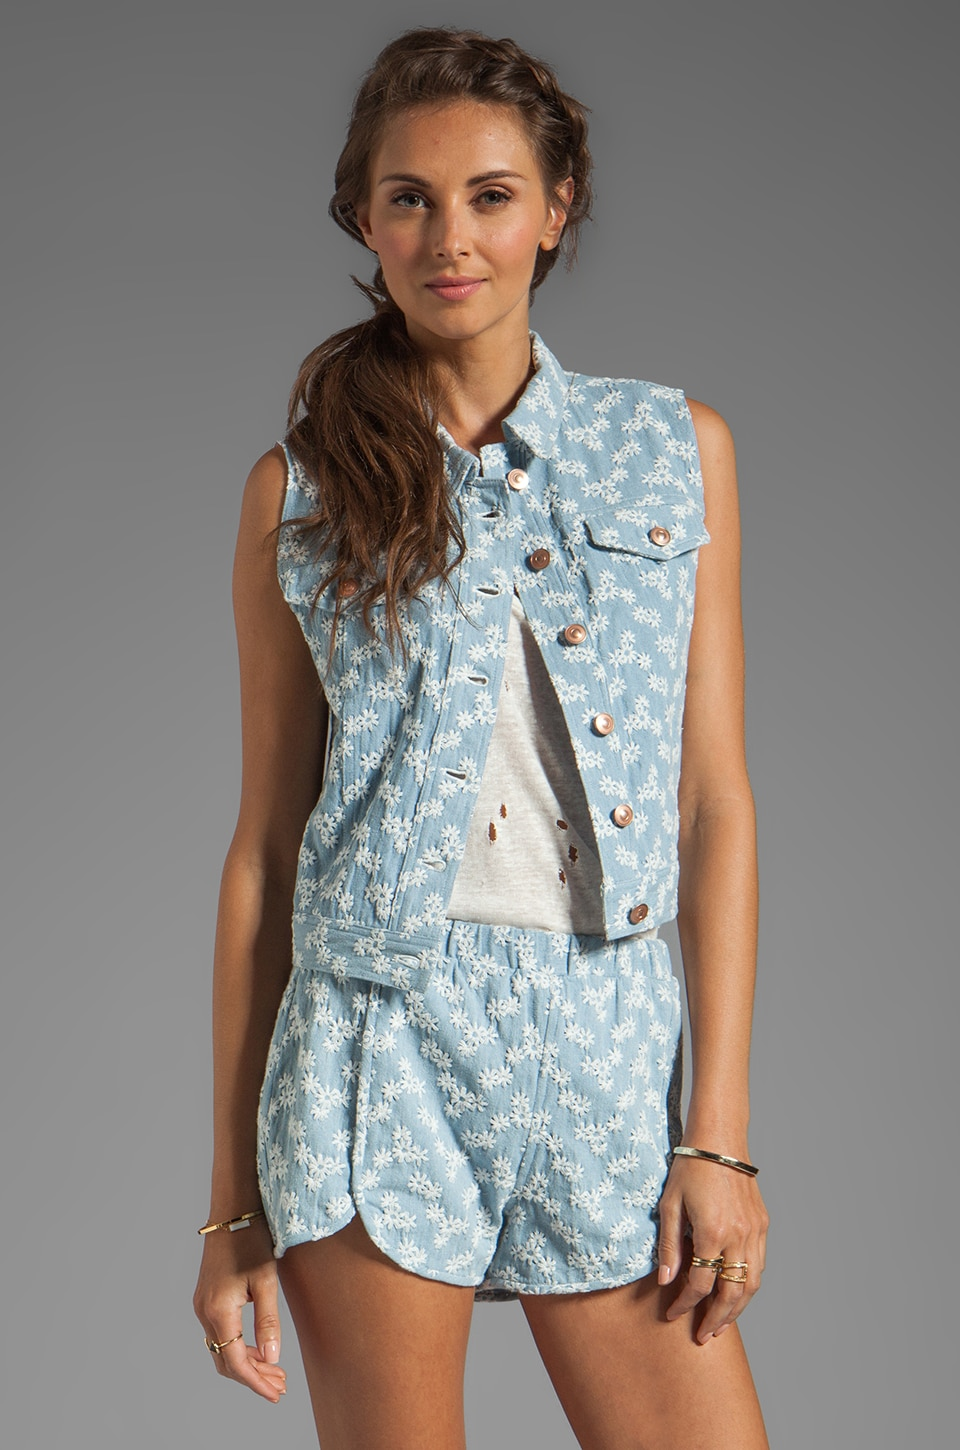 Dolce Vita Ricky Floral Denim Vest in Denim Blue